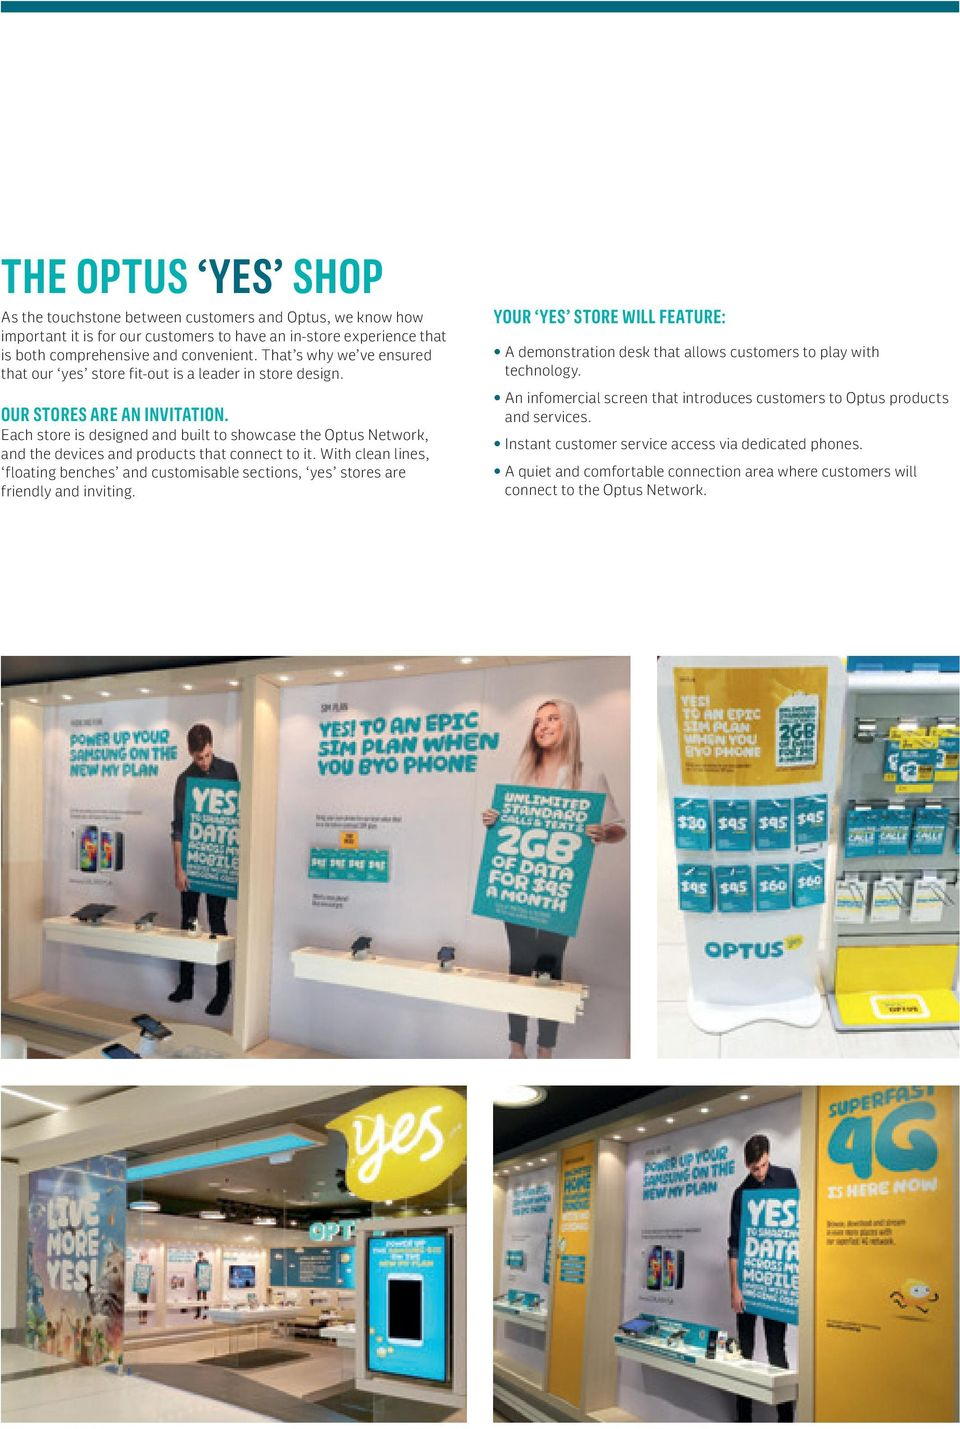 OPTUS YES SHOP FRANCHISE OPPORTUNITIES HERE S WHAT YOU NEED